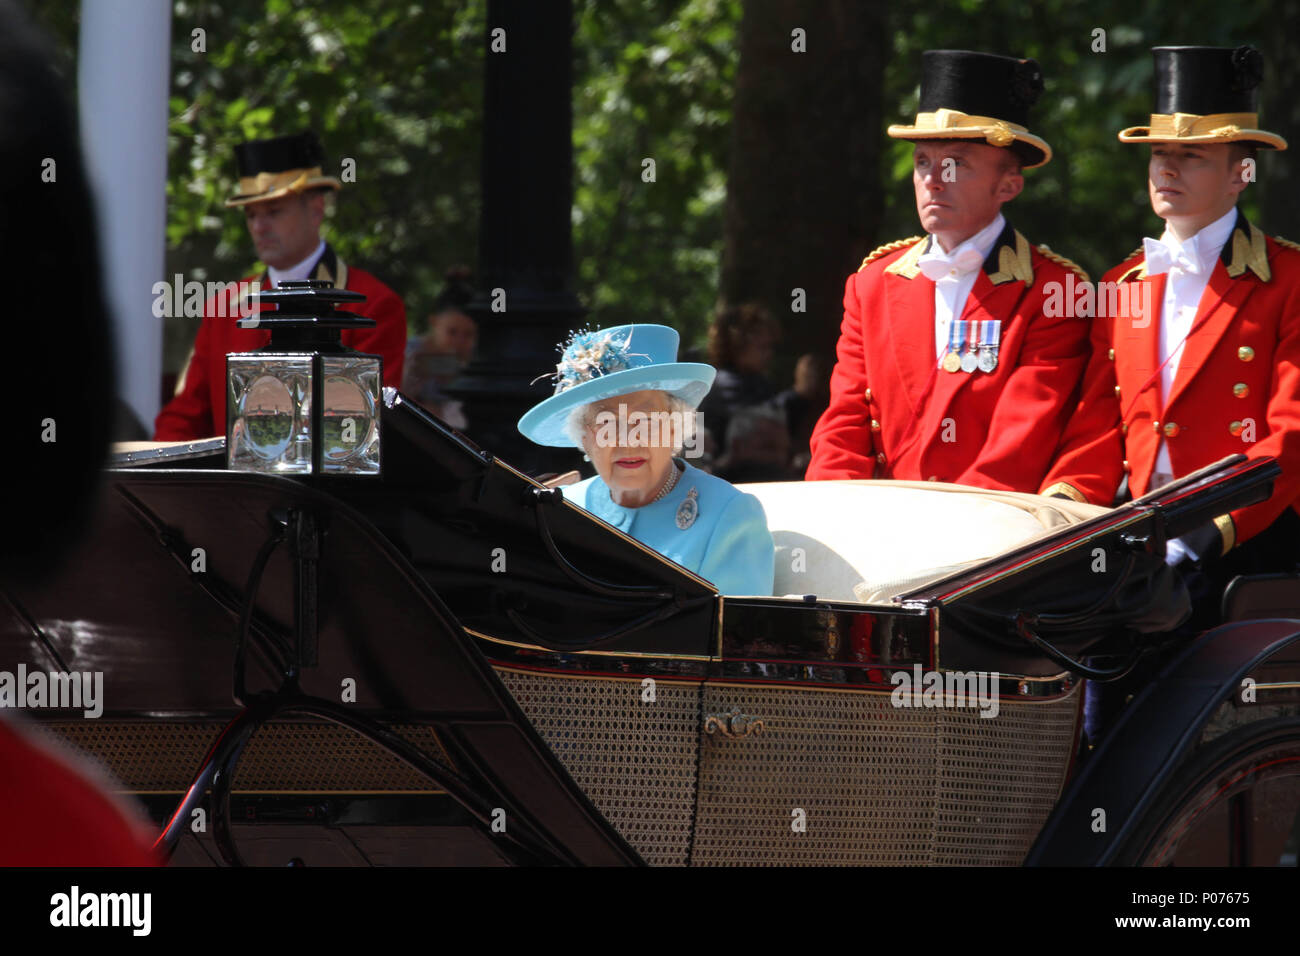 London, UK 9 June 2018: HMR Queen Elizabeth seen on horse-drawn carriage as they make their way to the Horse Guards Parade Ground on 9 June 2018. Over 1400 parading soldiers, 200 horses and 400 musicians come together each June in a great display of military precision, horsemanship and fanfare to mark The Queen's official birthday. Credit: David Mbiyu - Stock Image